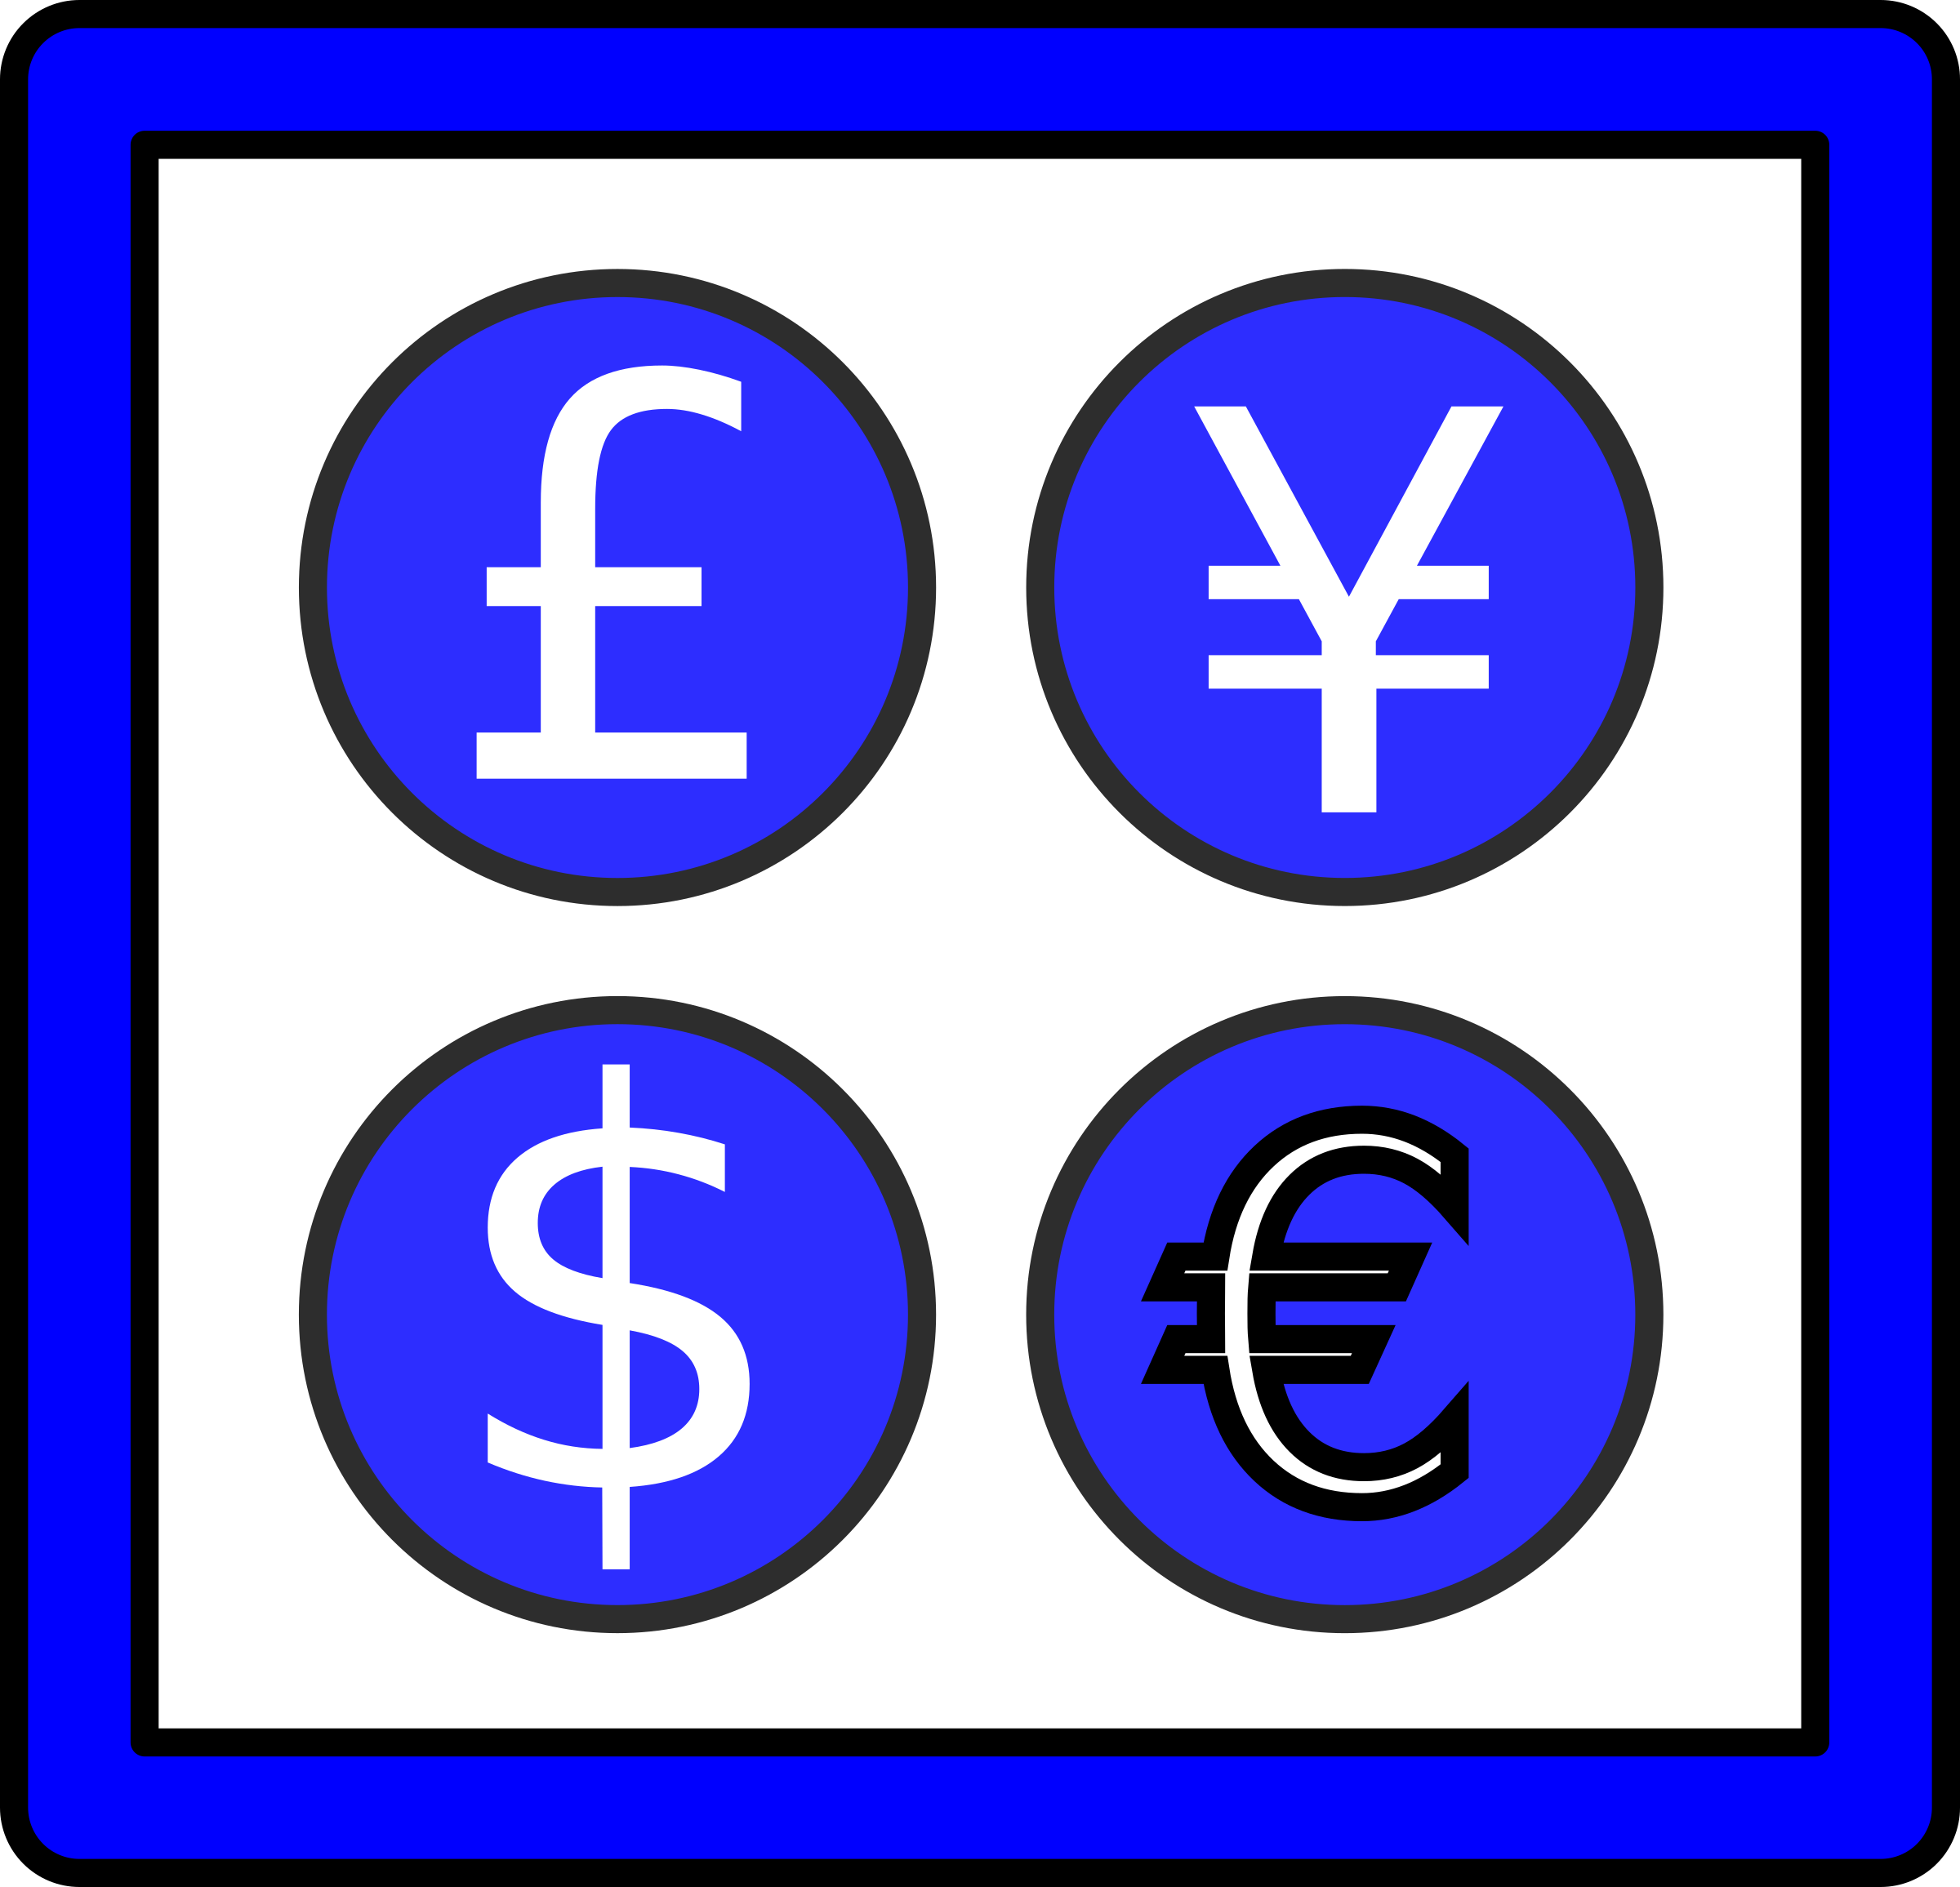 Change money clipart picture transparent stock Clipart - Bureau de change picture transparent stock